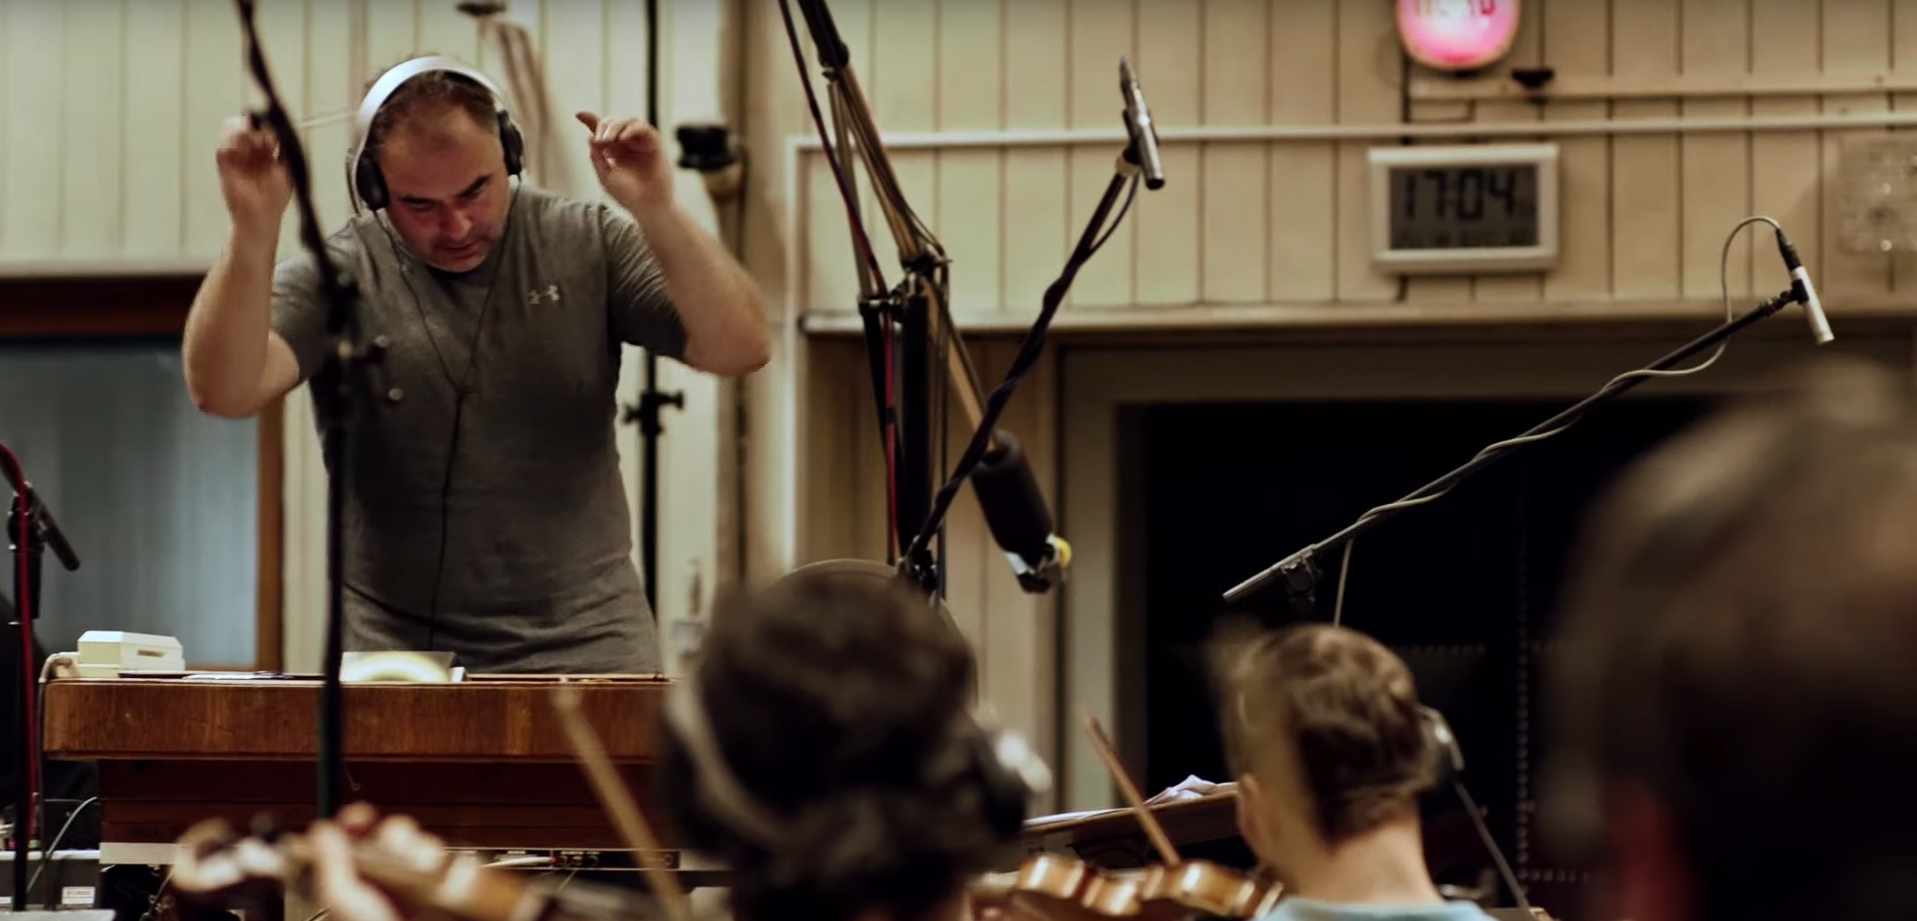 New World Shares Behind-the-Scenes Interviews from Creating the Soundtrack of Aeternum